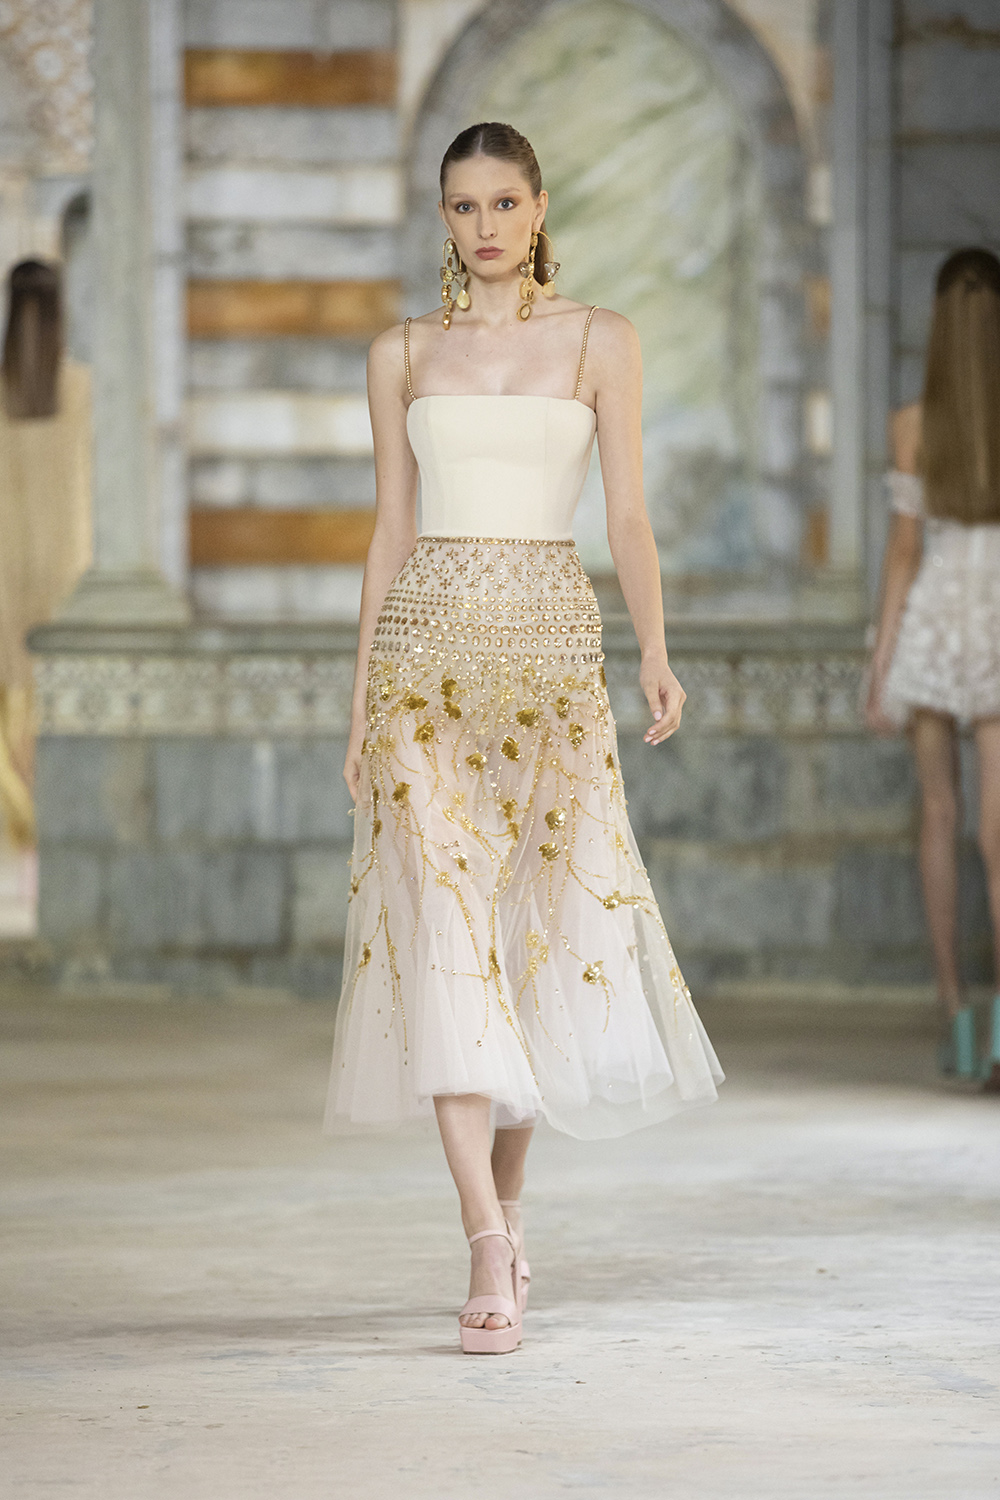 Georges Hobeika SS22 Lace shift dress with floral appliques I DreaminLace.com #fashionstyle